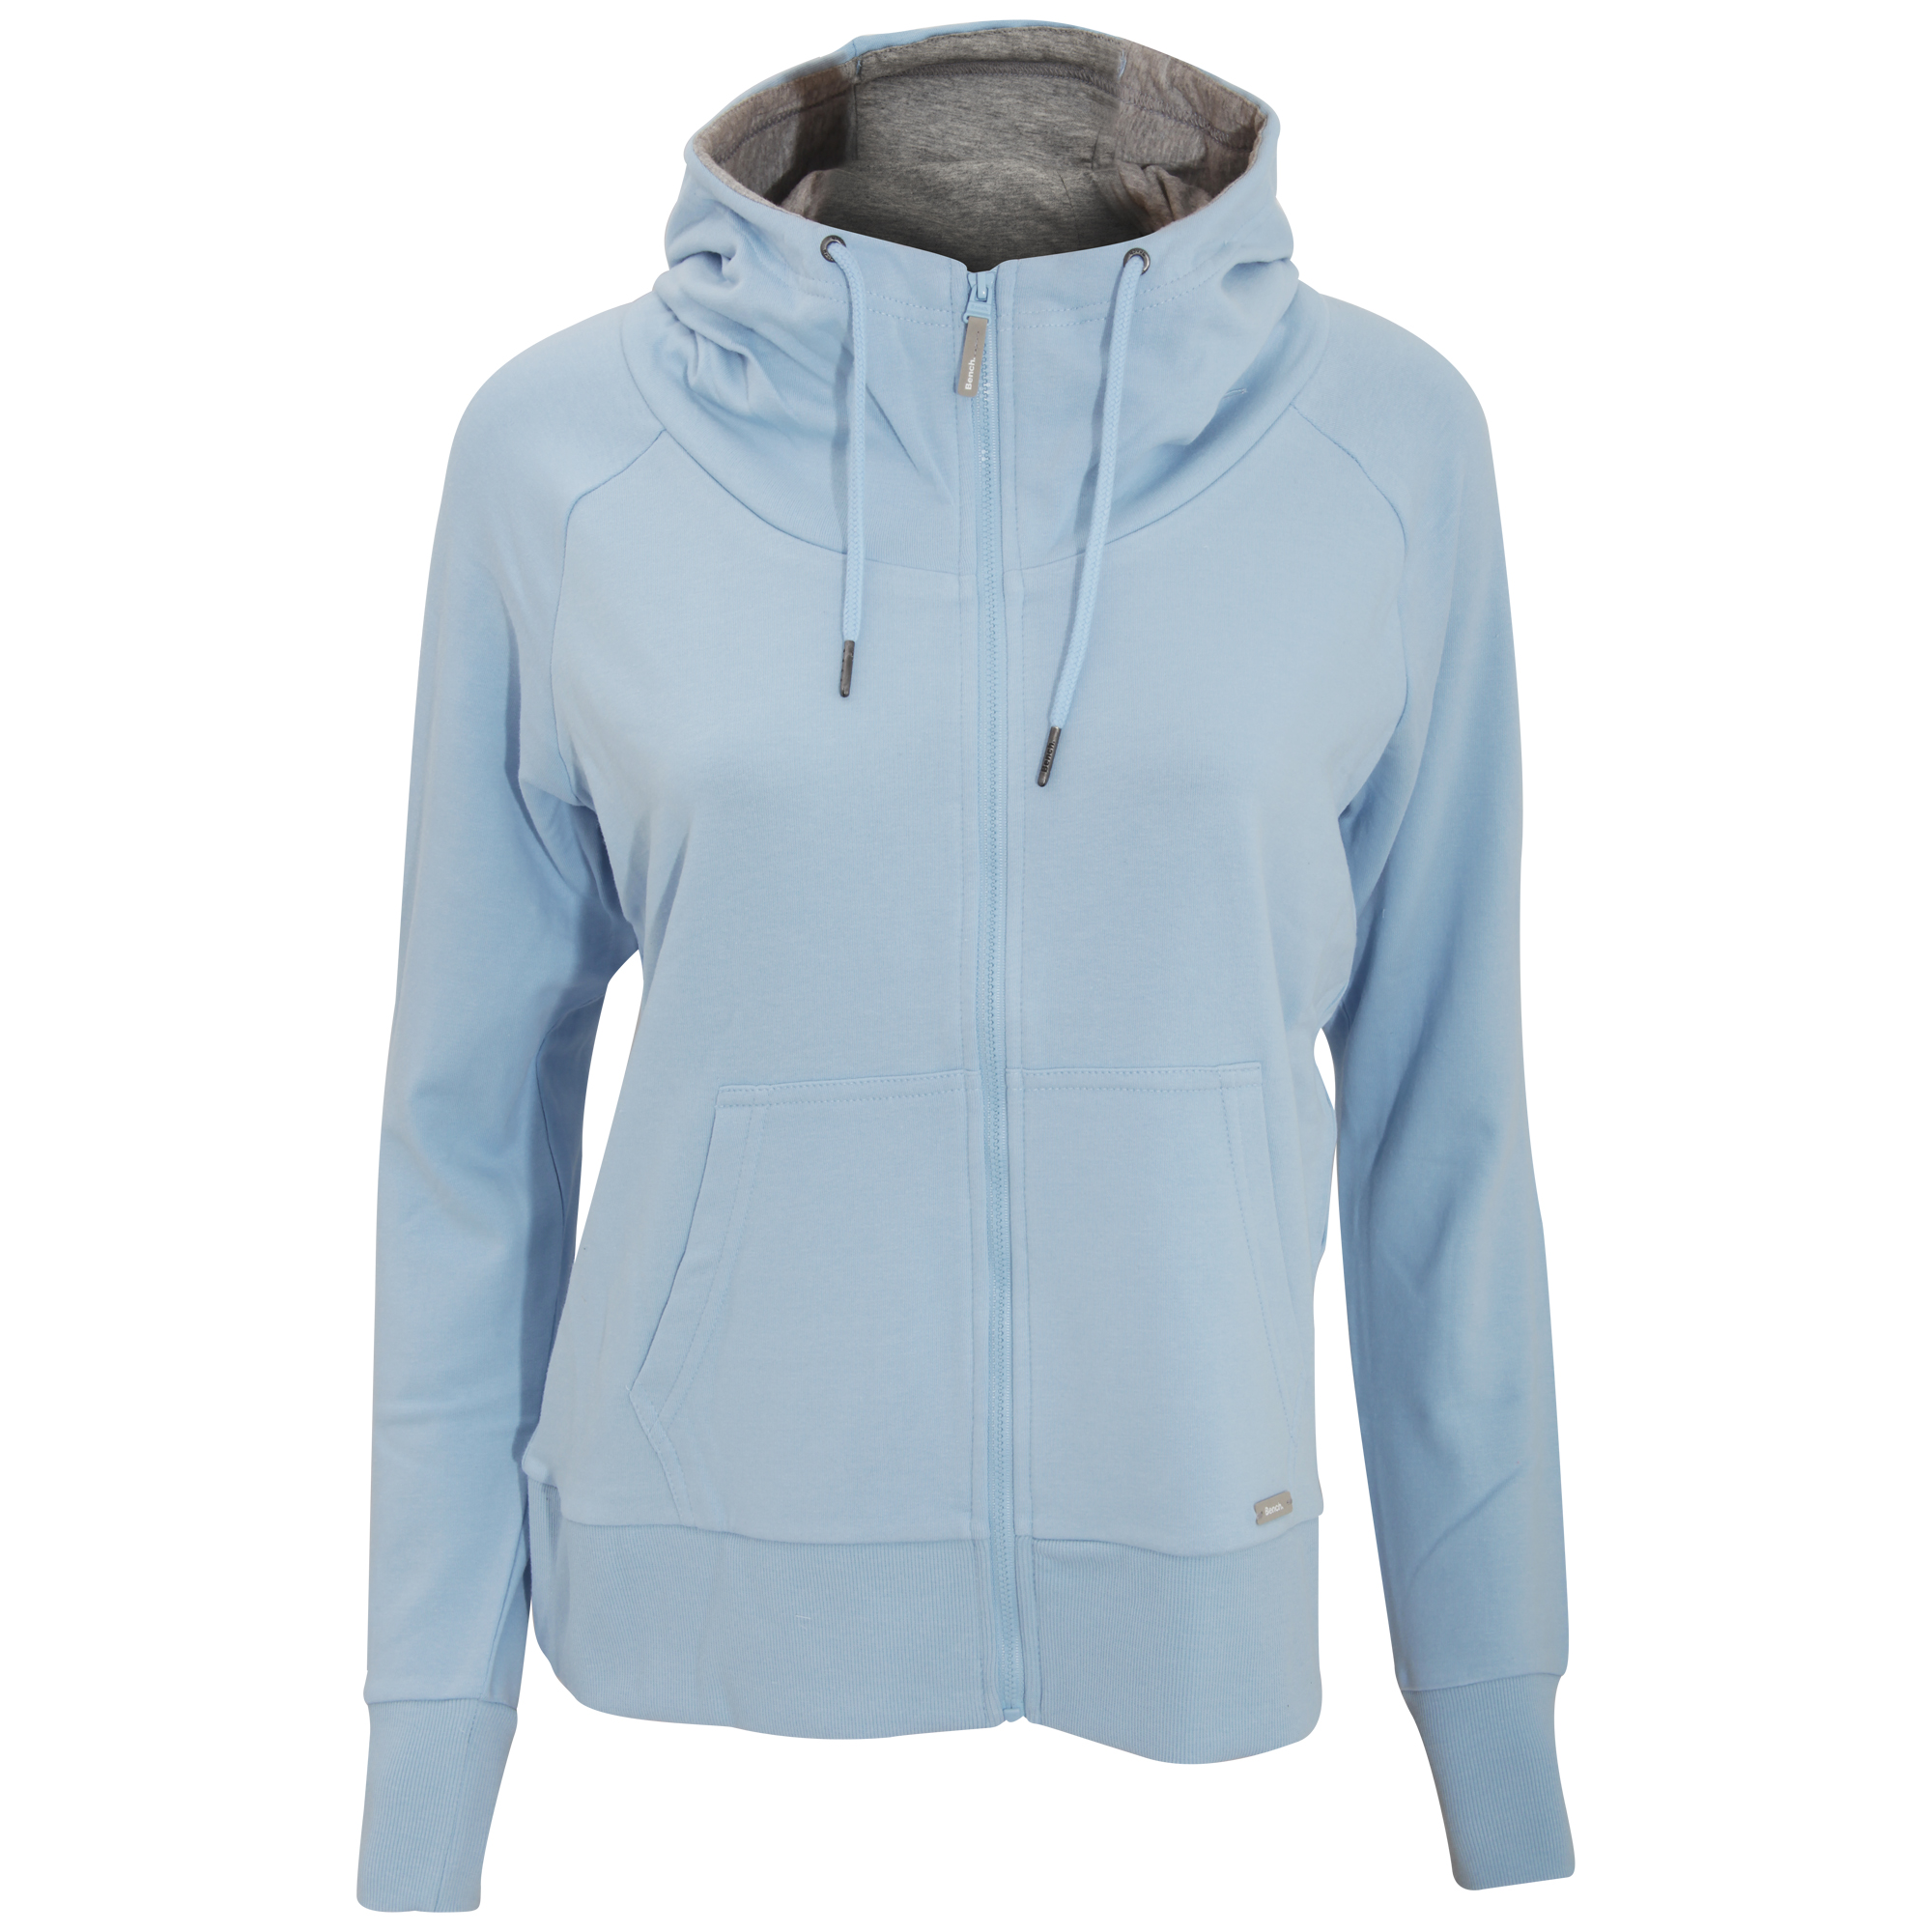 Bench womens jackets